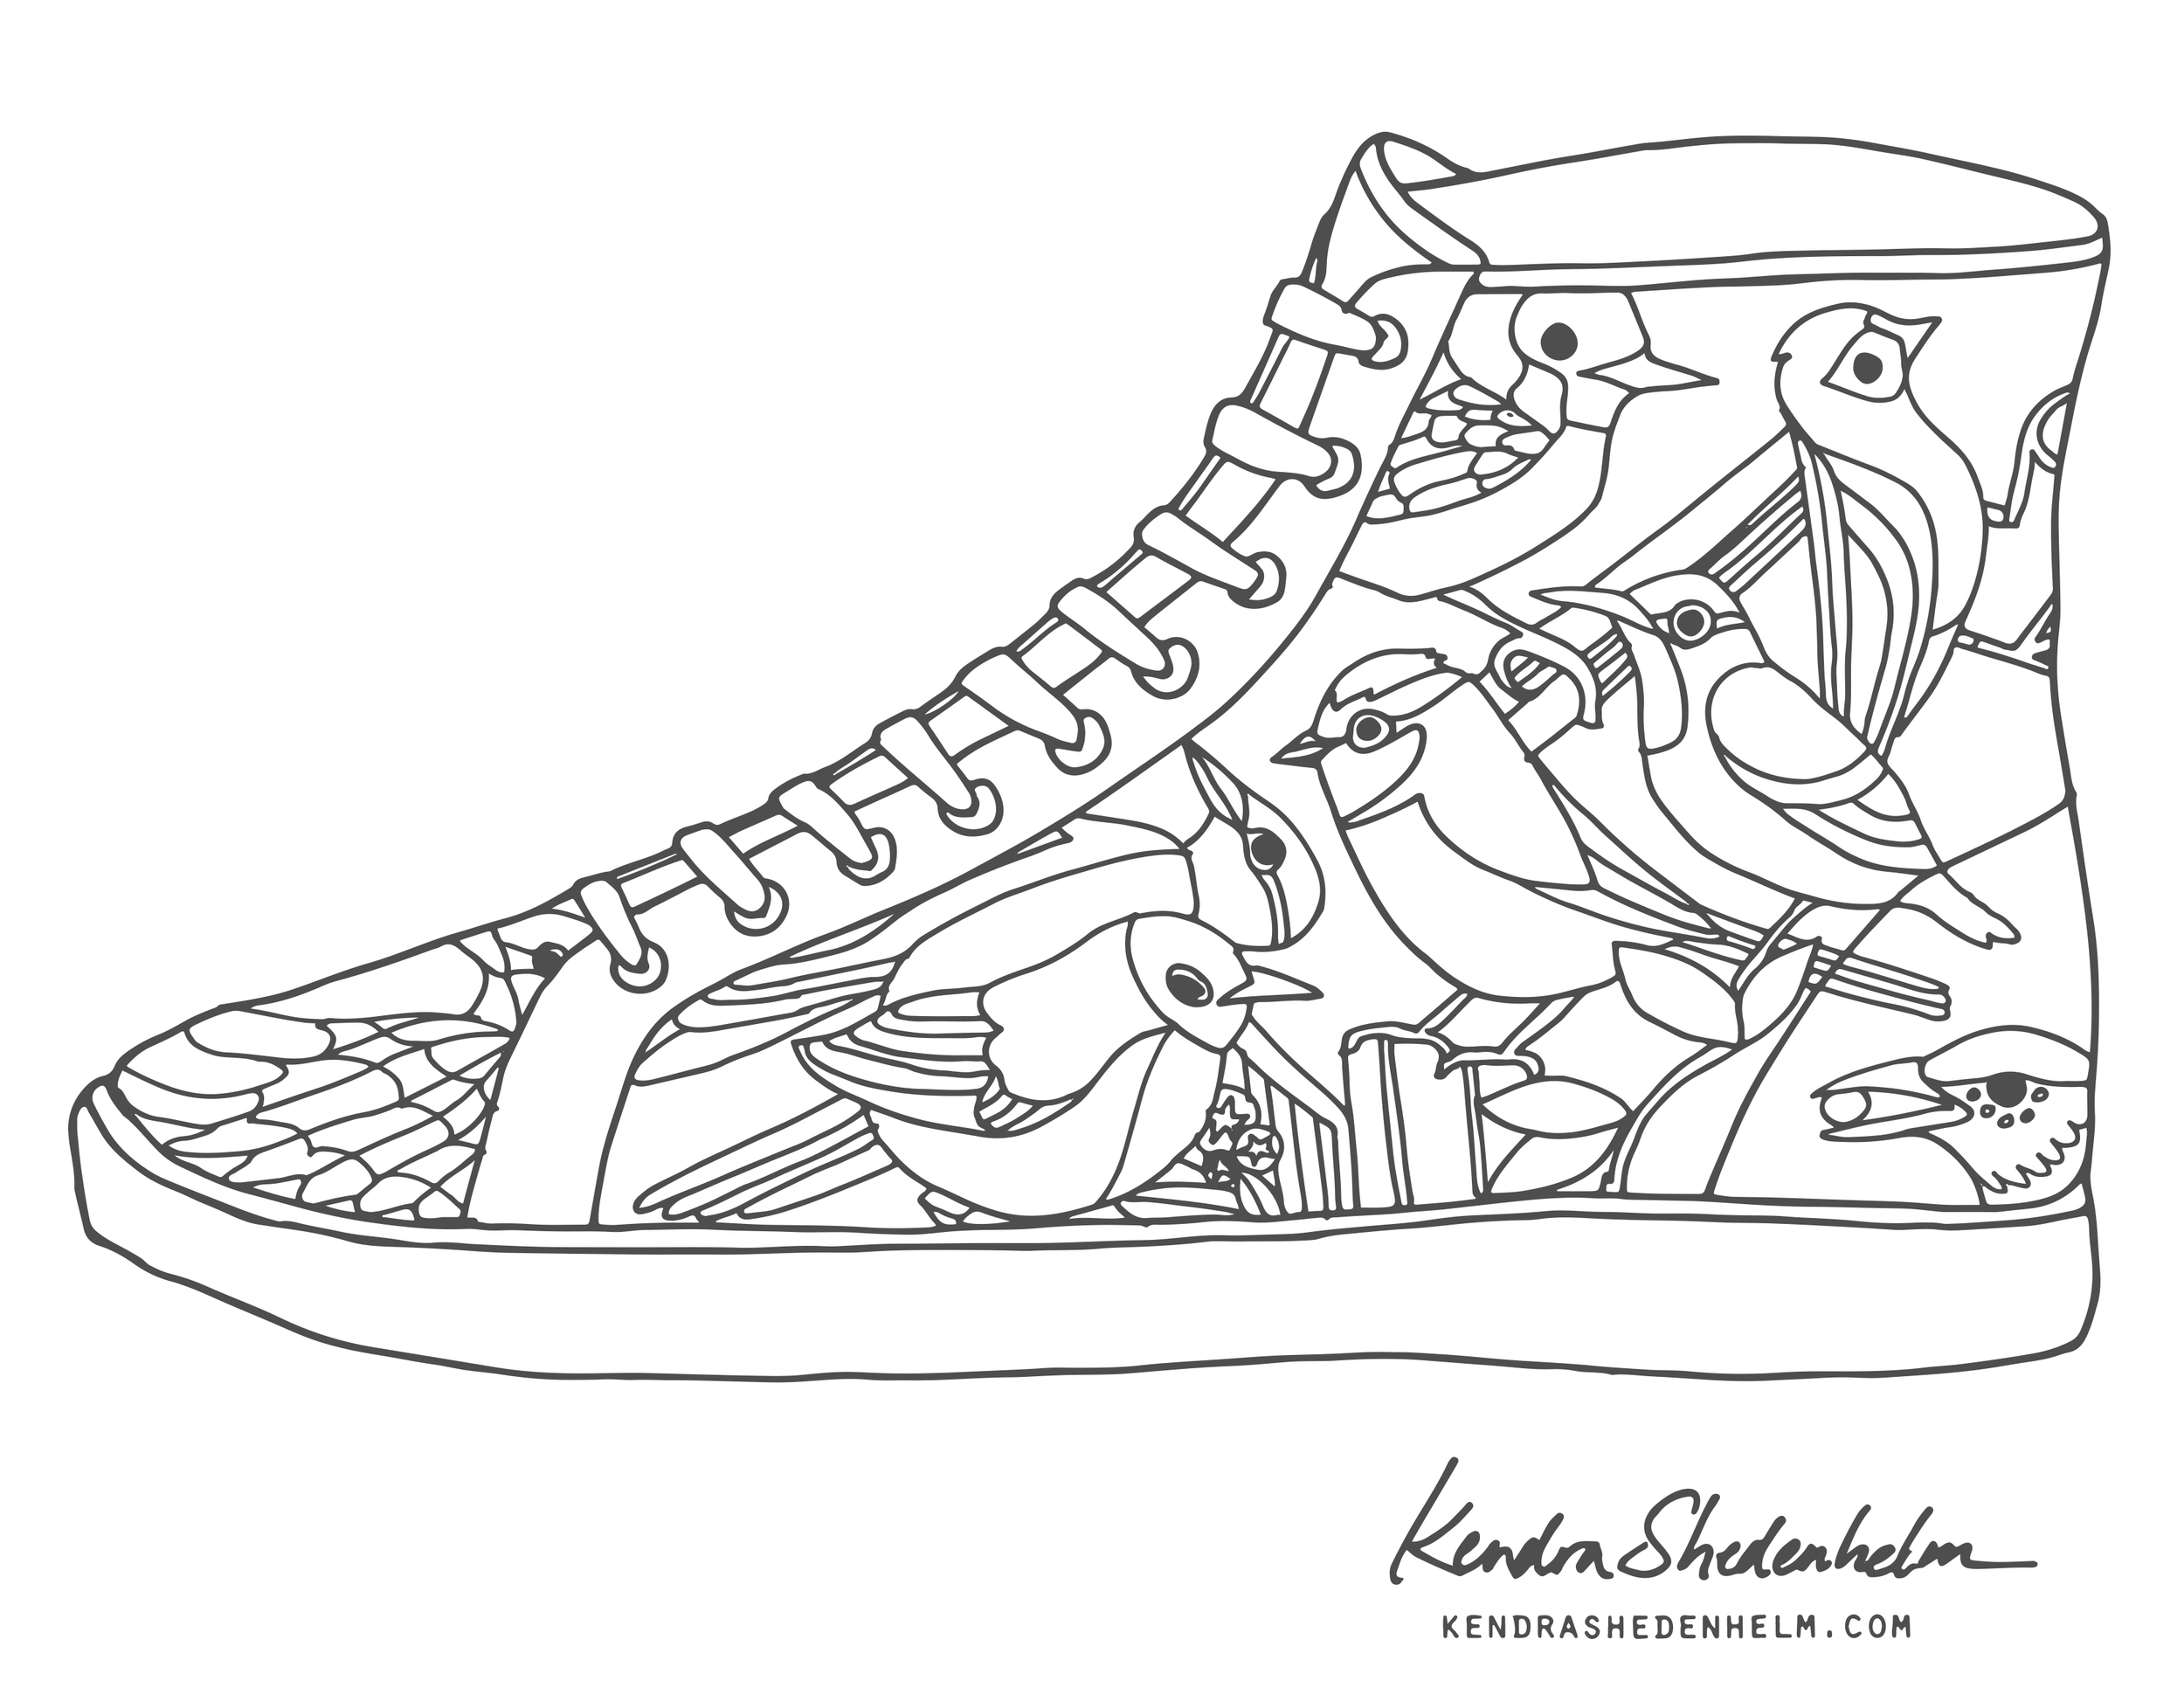 Birds, doodles, shoes and FREE coloring pages! — Kendra